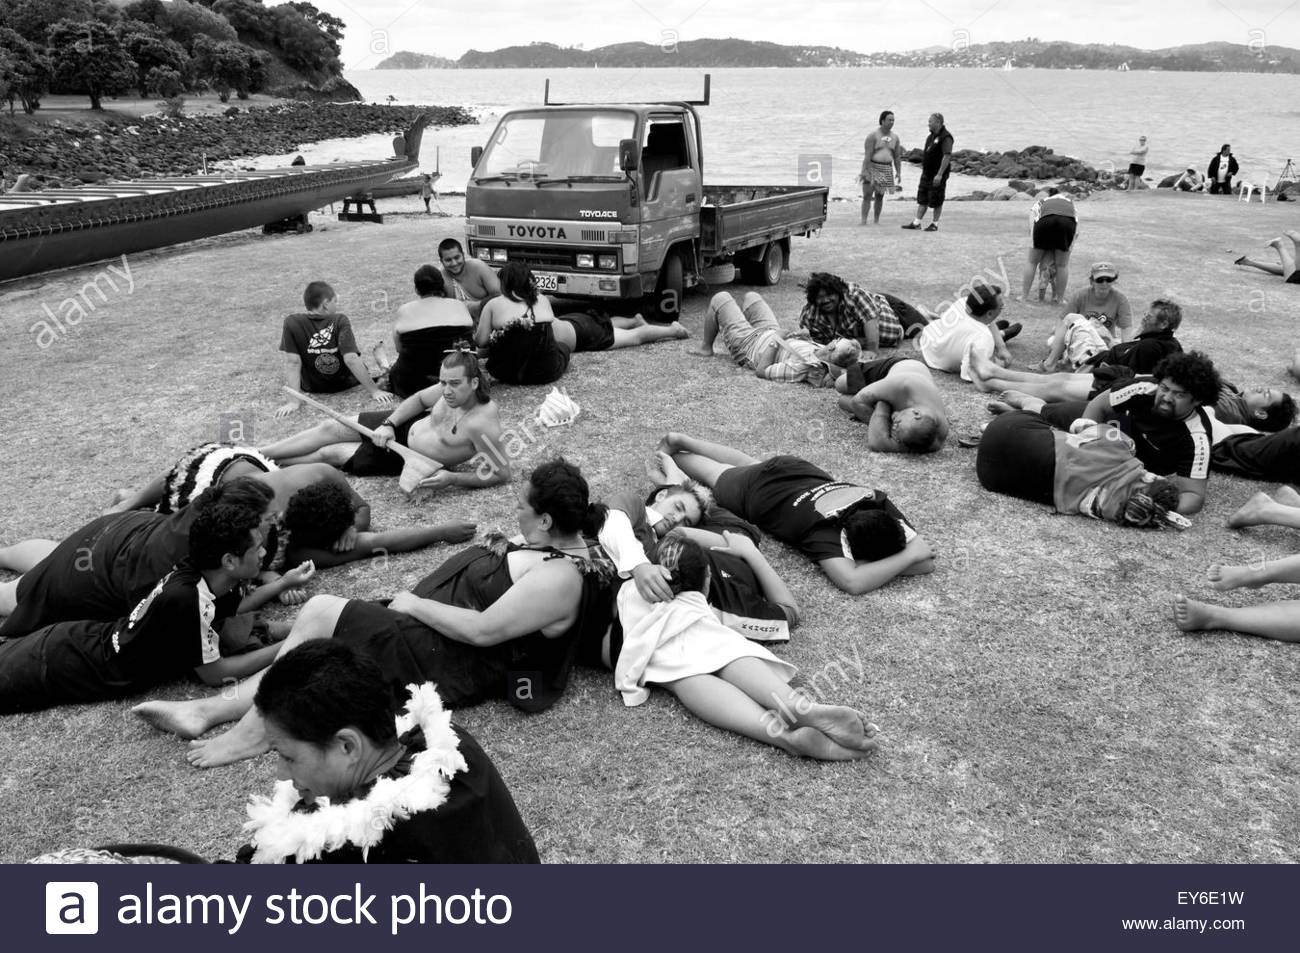 Members of a waka (traditional Maori canoe) crew rest after participating in  Waitangi Day annual commemorations Stock Photo